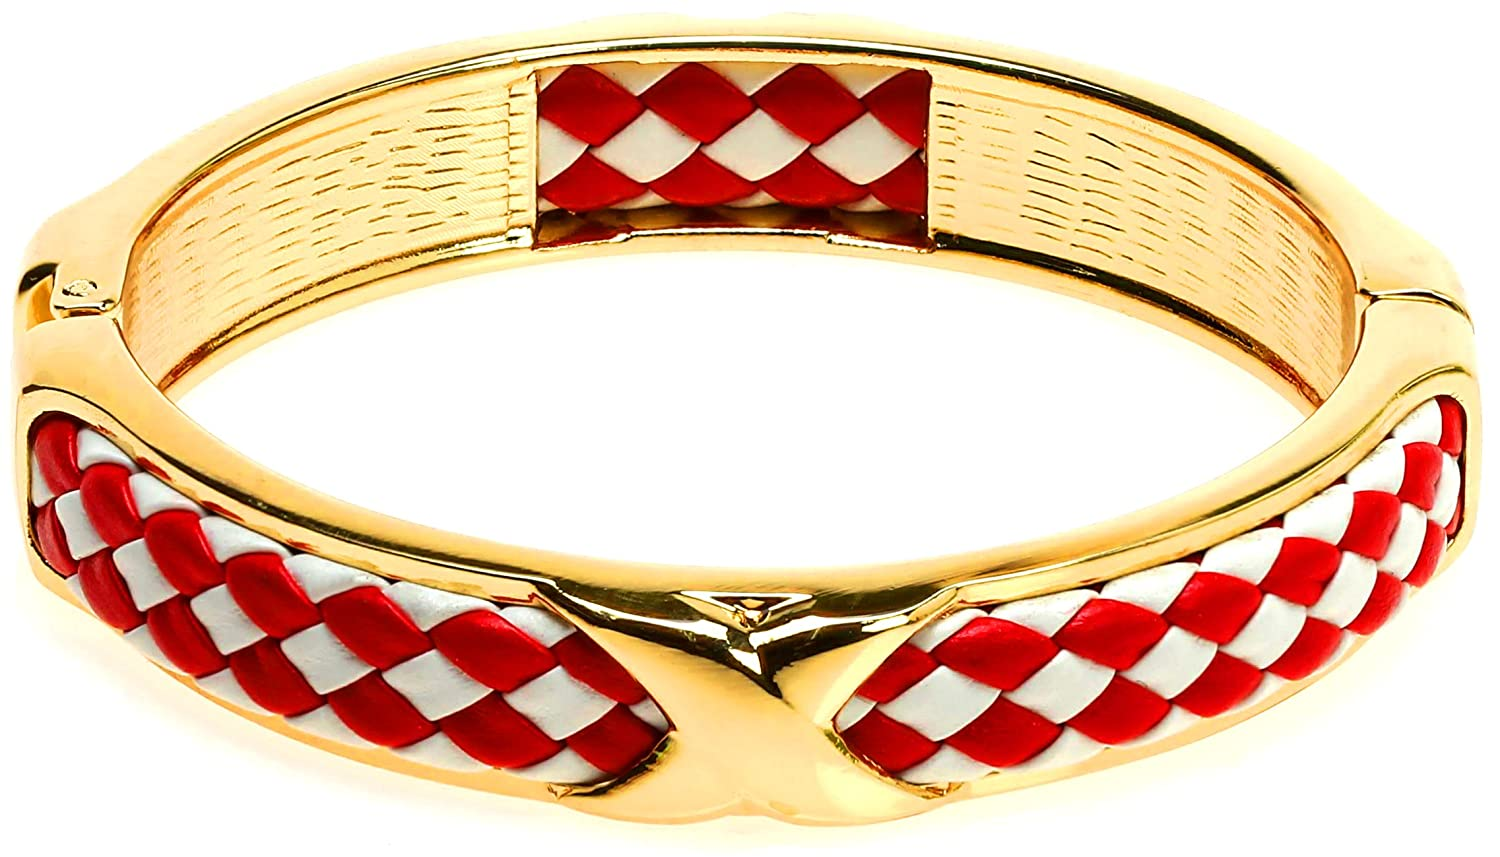 Red and White Braided Leather Hinge Metal Bangle Bracelets Set of 2 Lova Jewelry Black and White